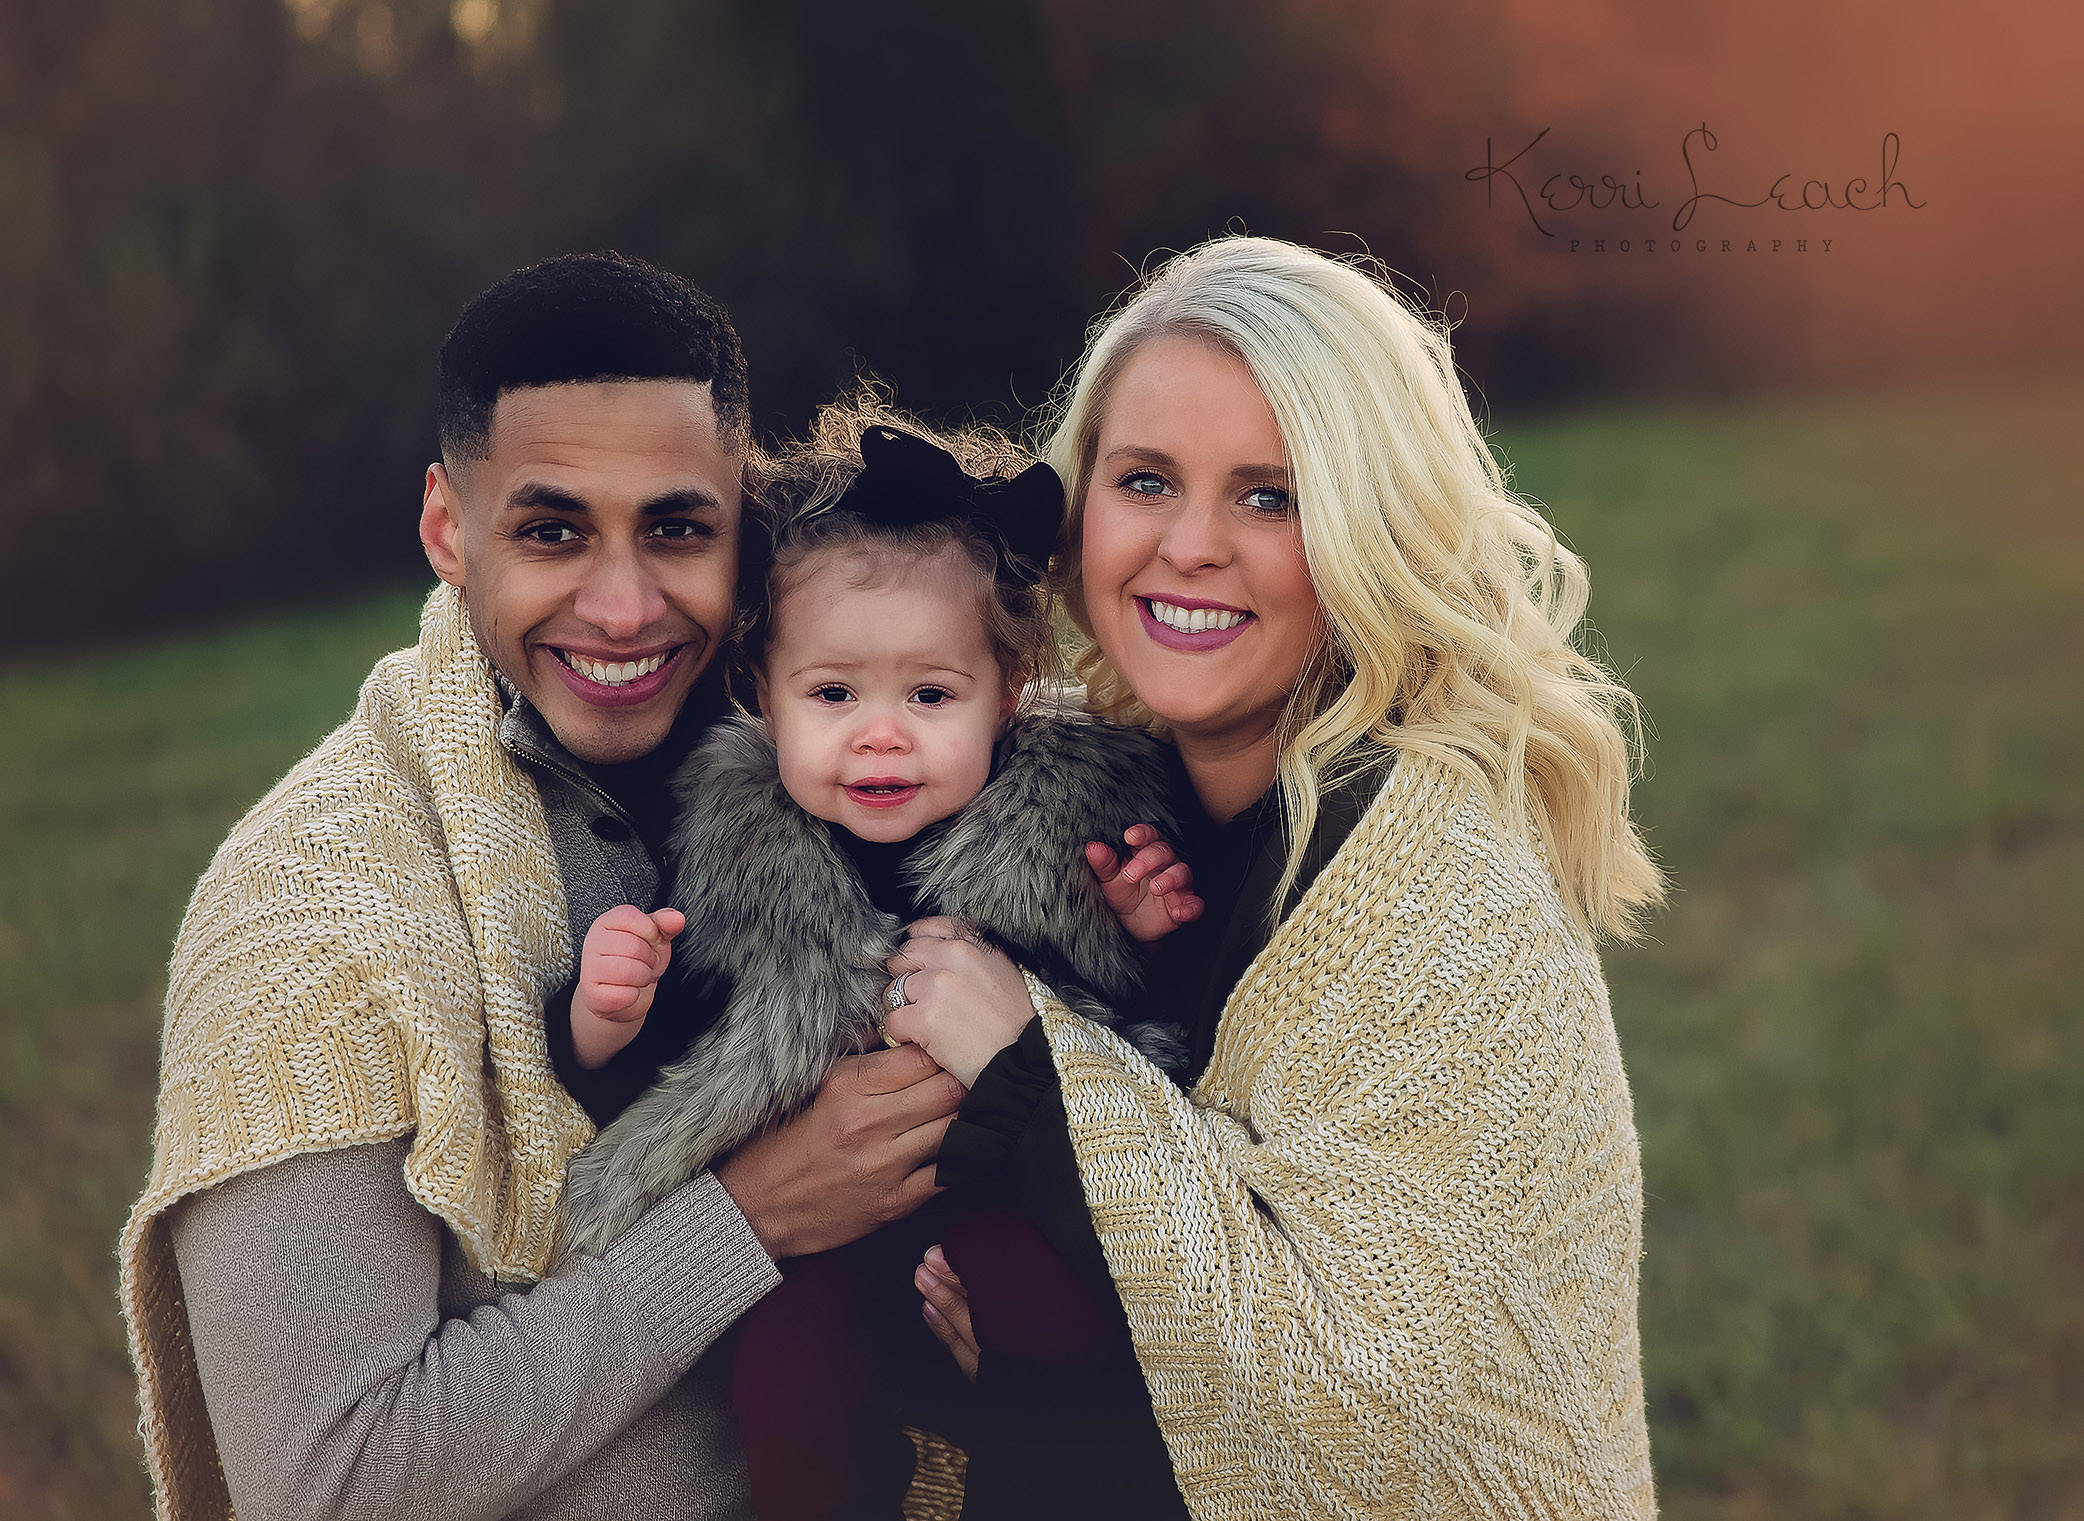 Kerri Leach Photography- Family photographer Evansville, In-Indiana family photographer-family photography